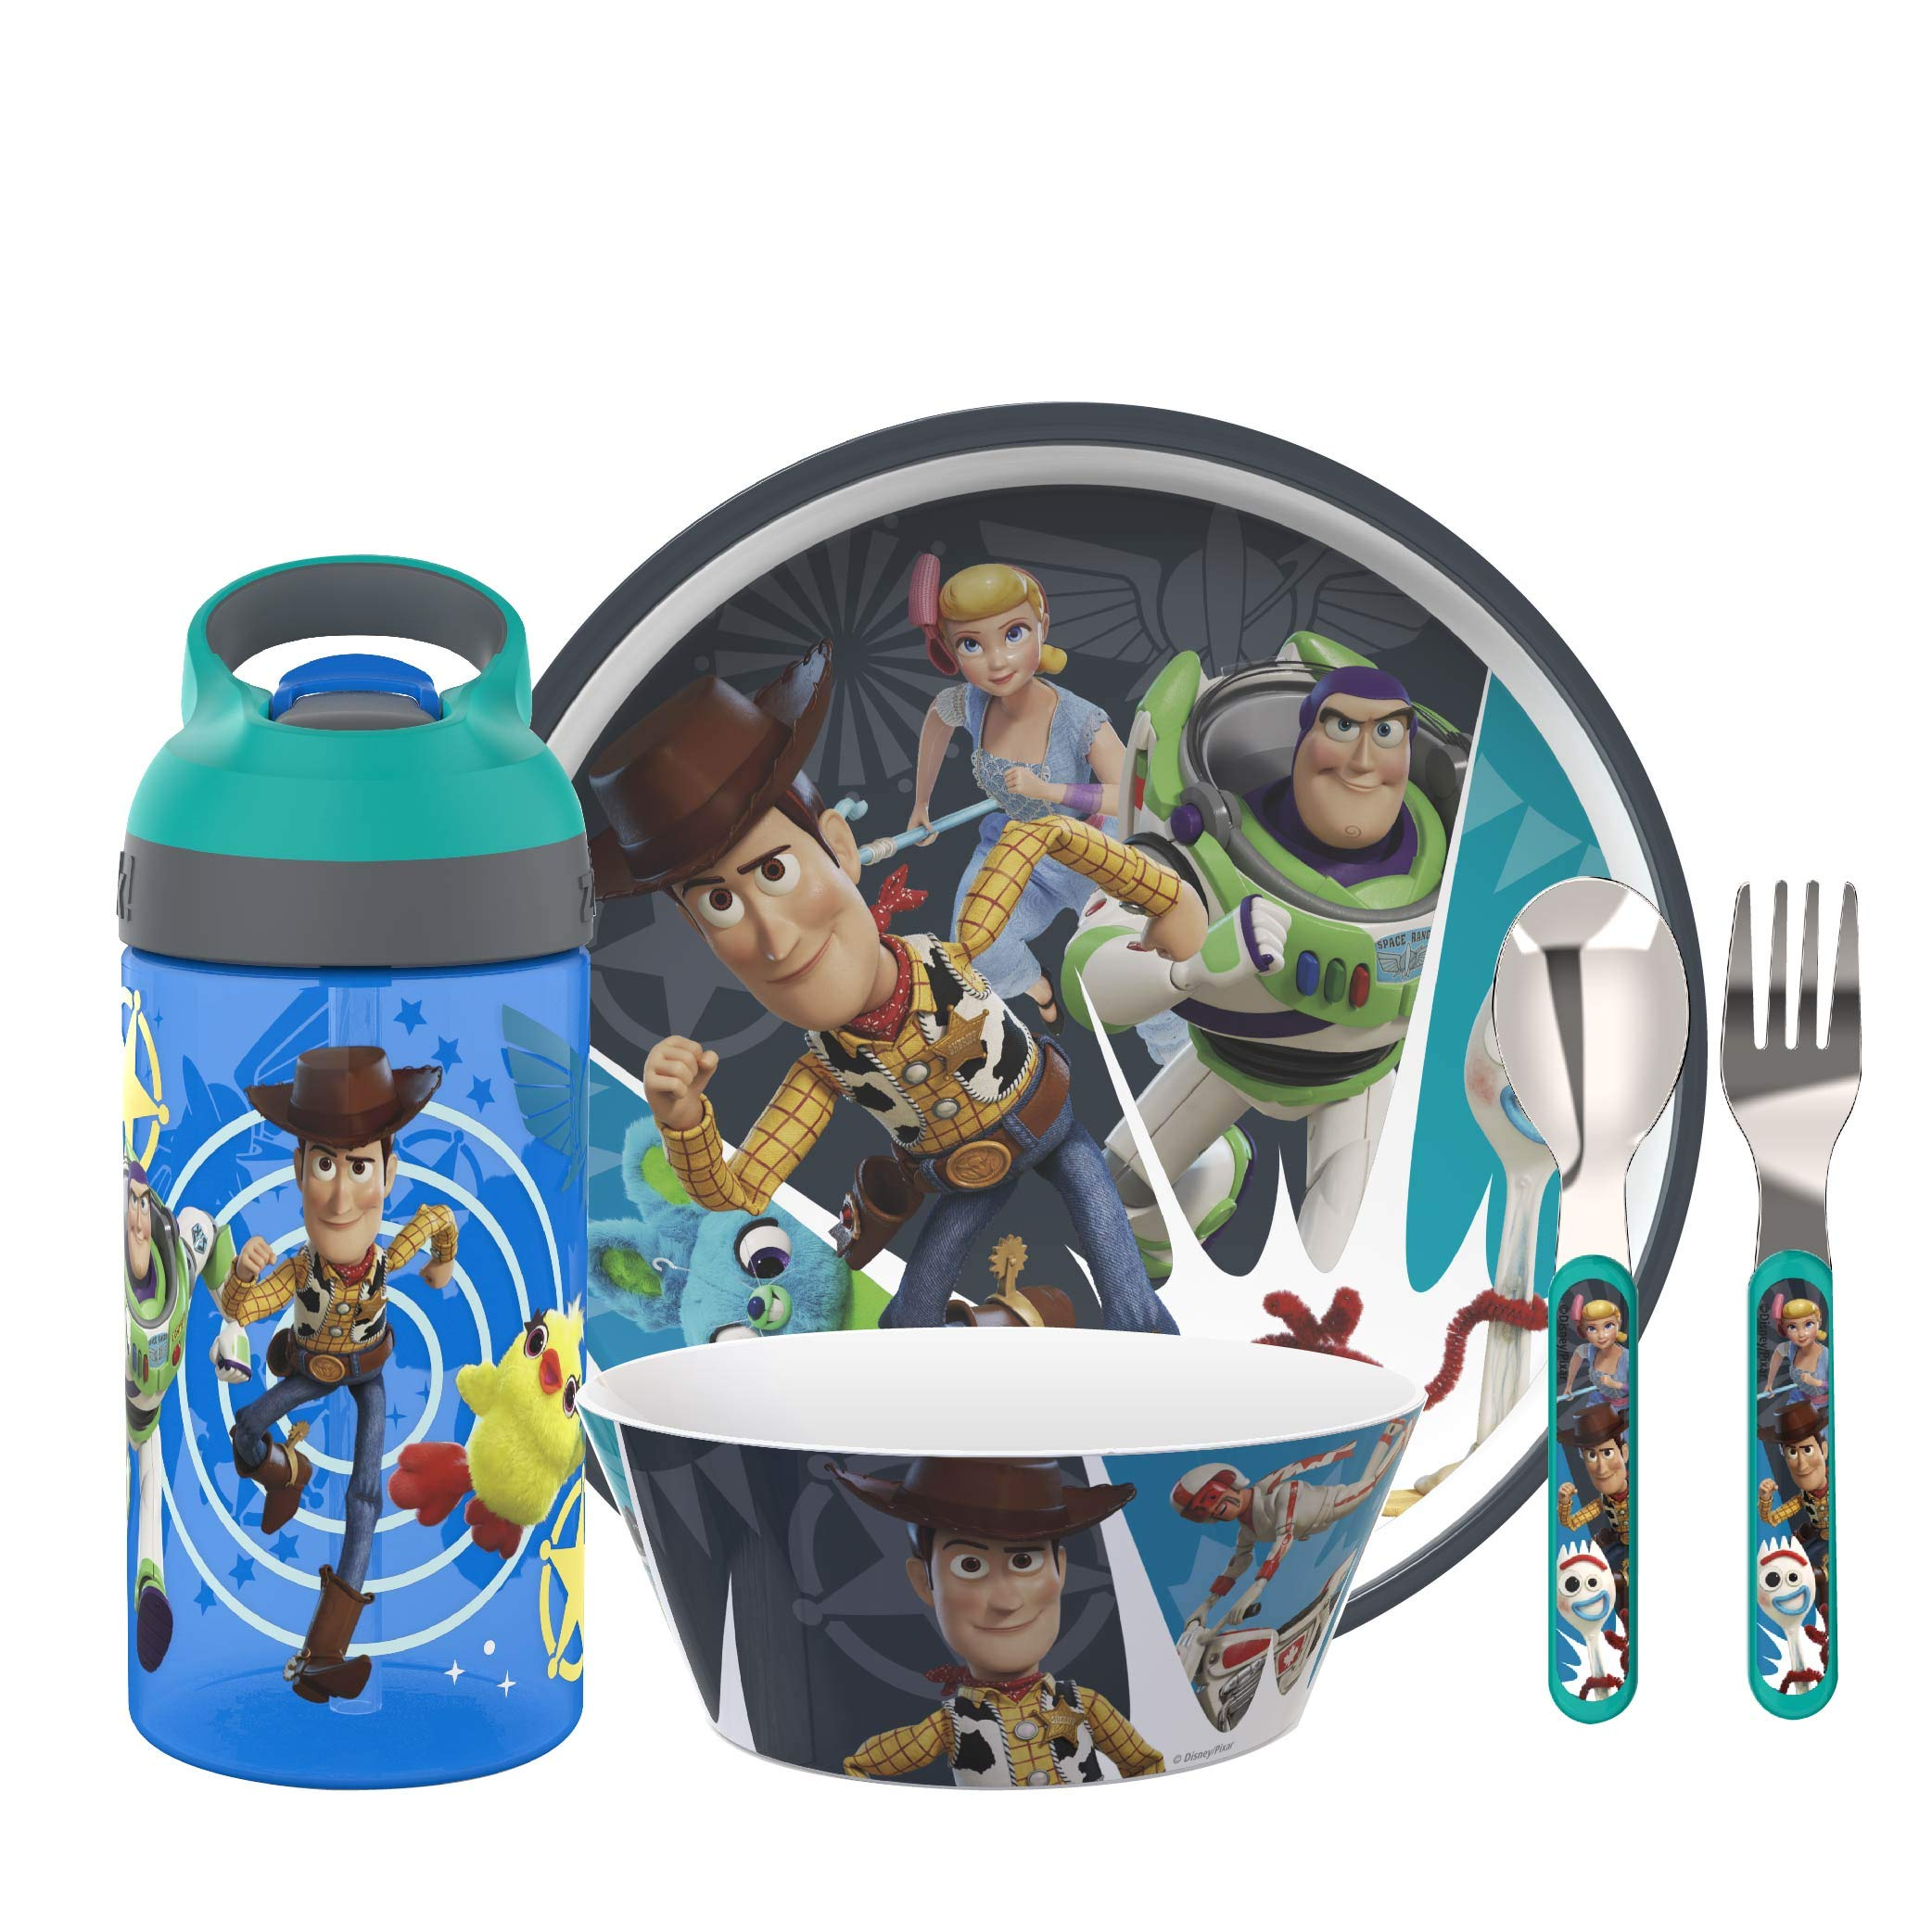 Zak Designs Toy Story 4 Dinnerware Set Includes Plate, Bowl, Water Bottle, and Utensil Tableware, Made of Durable Material and Perfect for Kids (Woody and Buzz Lightyear, 5 Piece set, BPA Free)